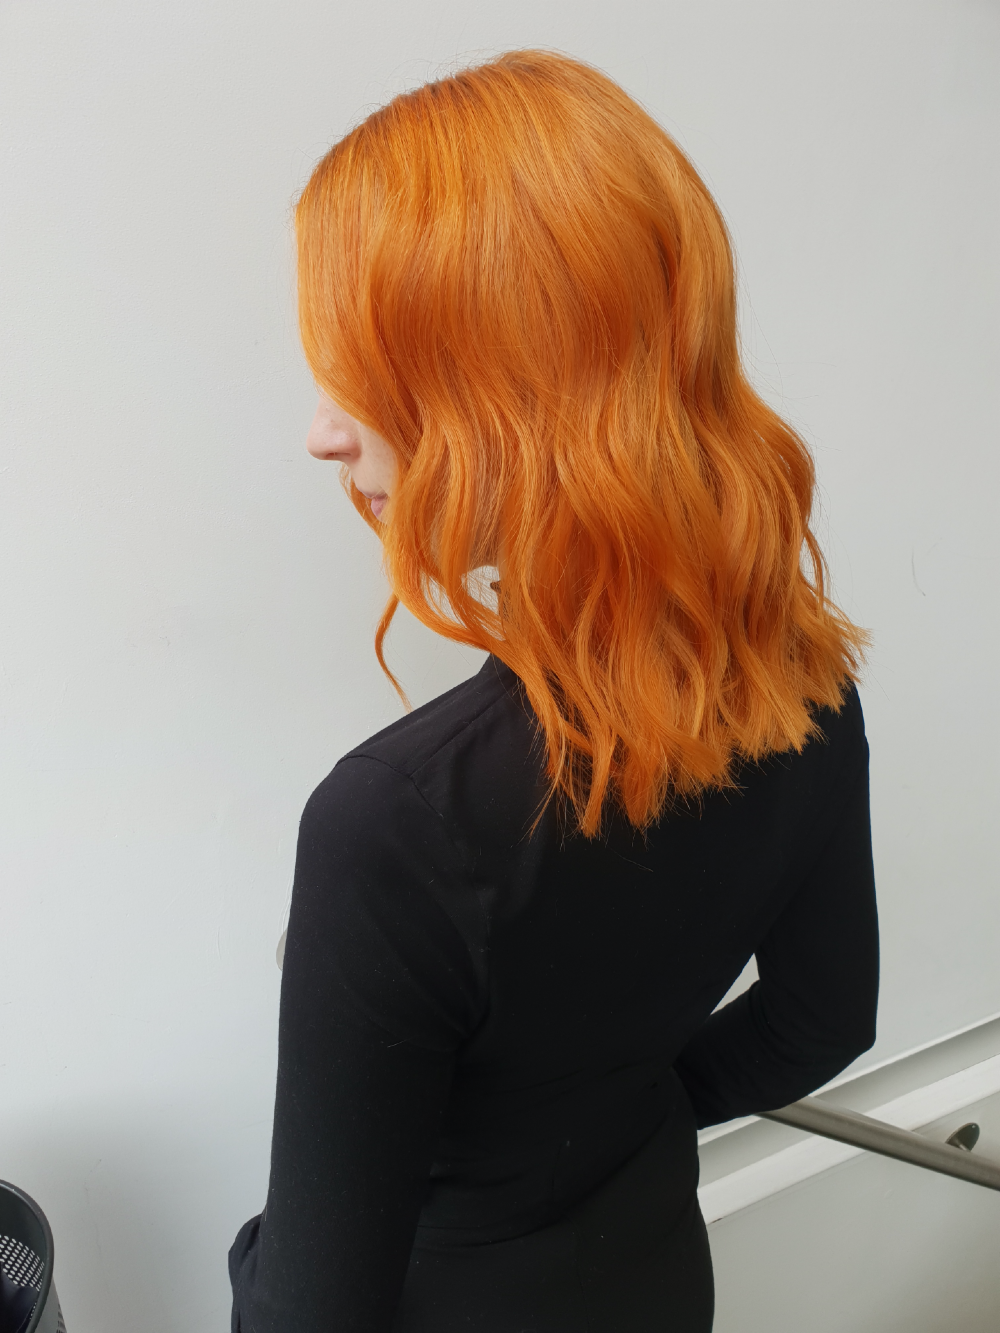 wella passionsita maxine mcarthur copper blonde zoom party hair